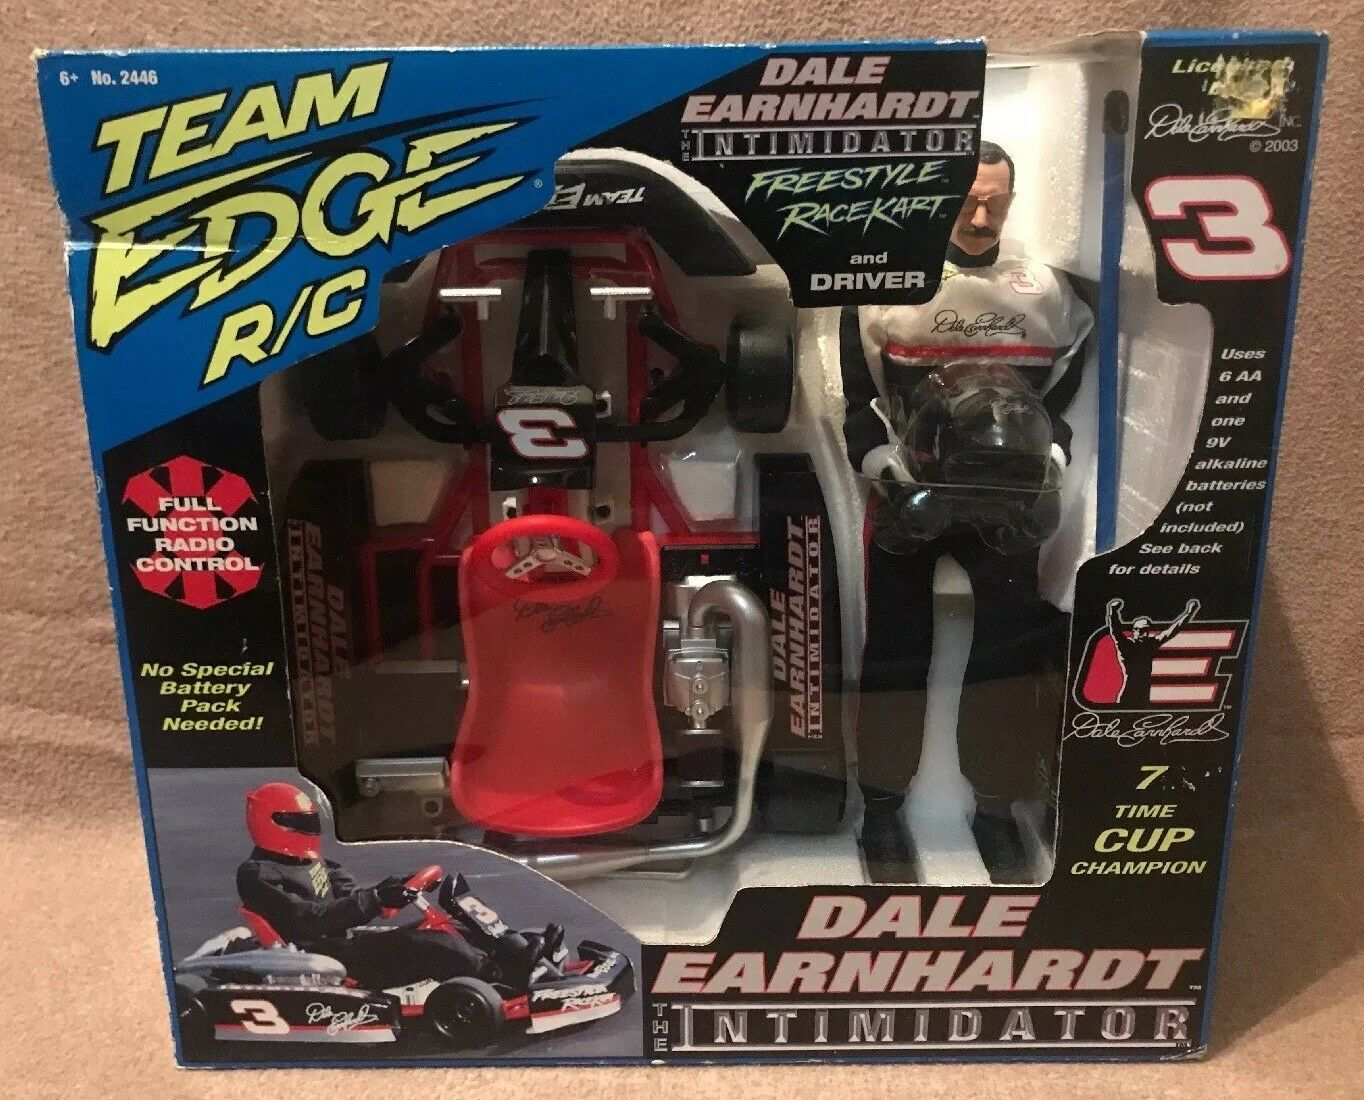 2003 squadra Edge R C Dale Earnhardt The Intimidator gratuitostyle  RaceKart w  Driver  shopping online di moda